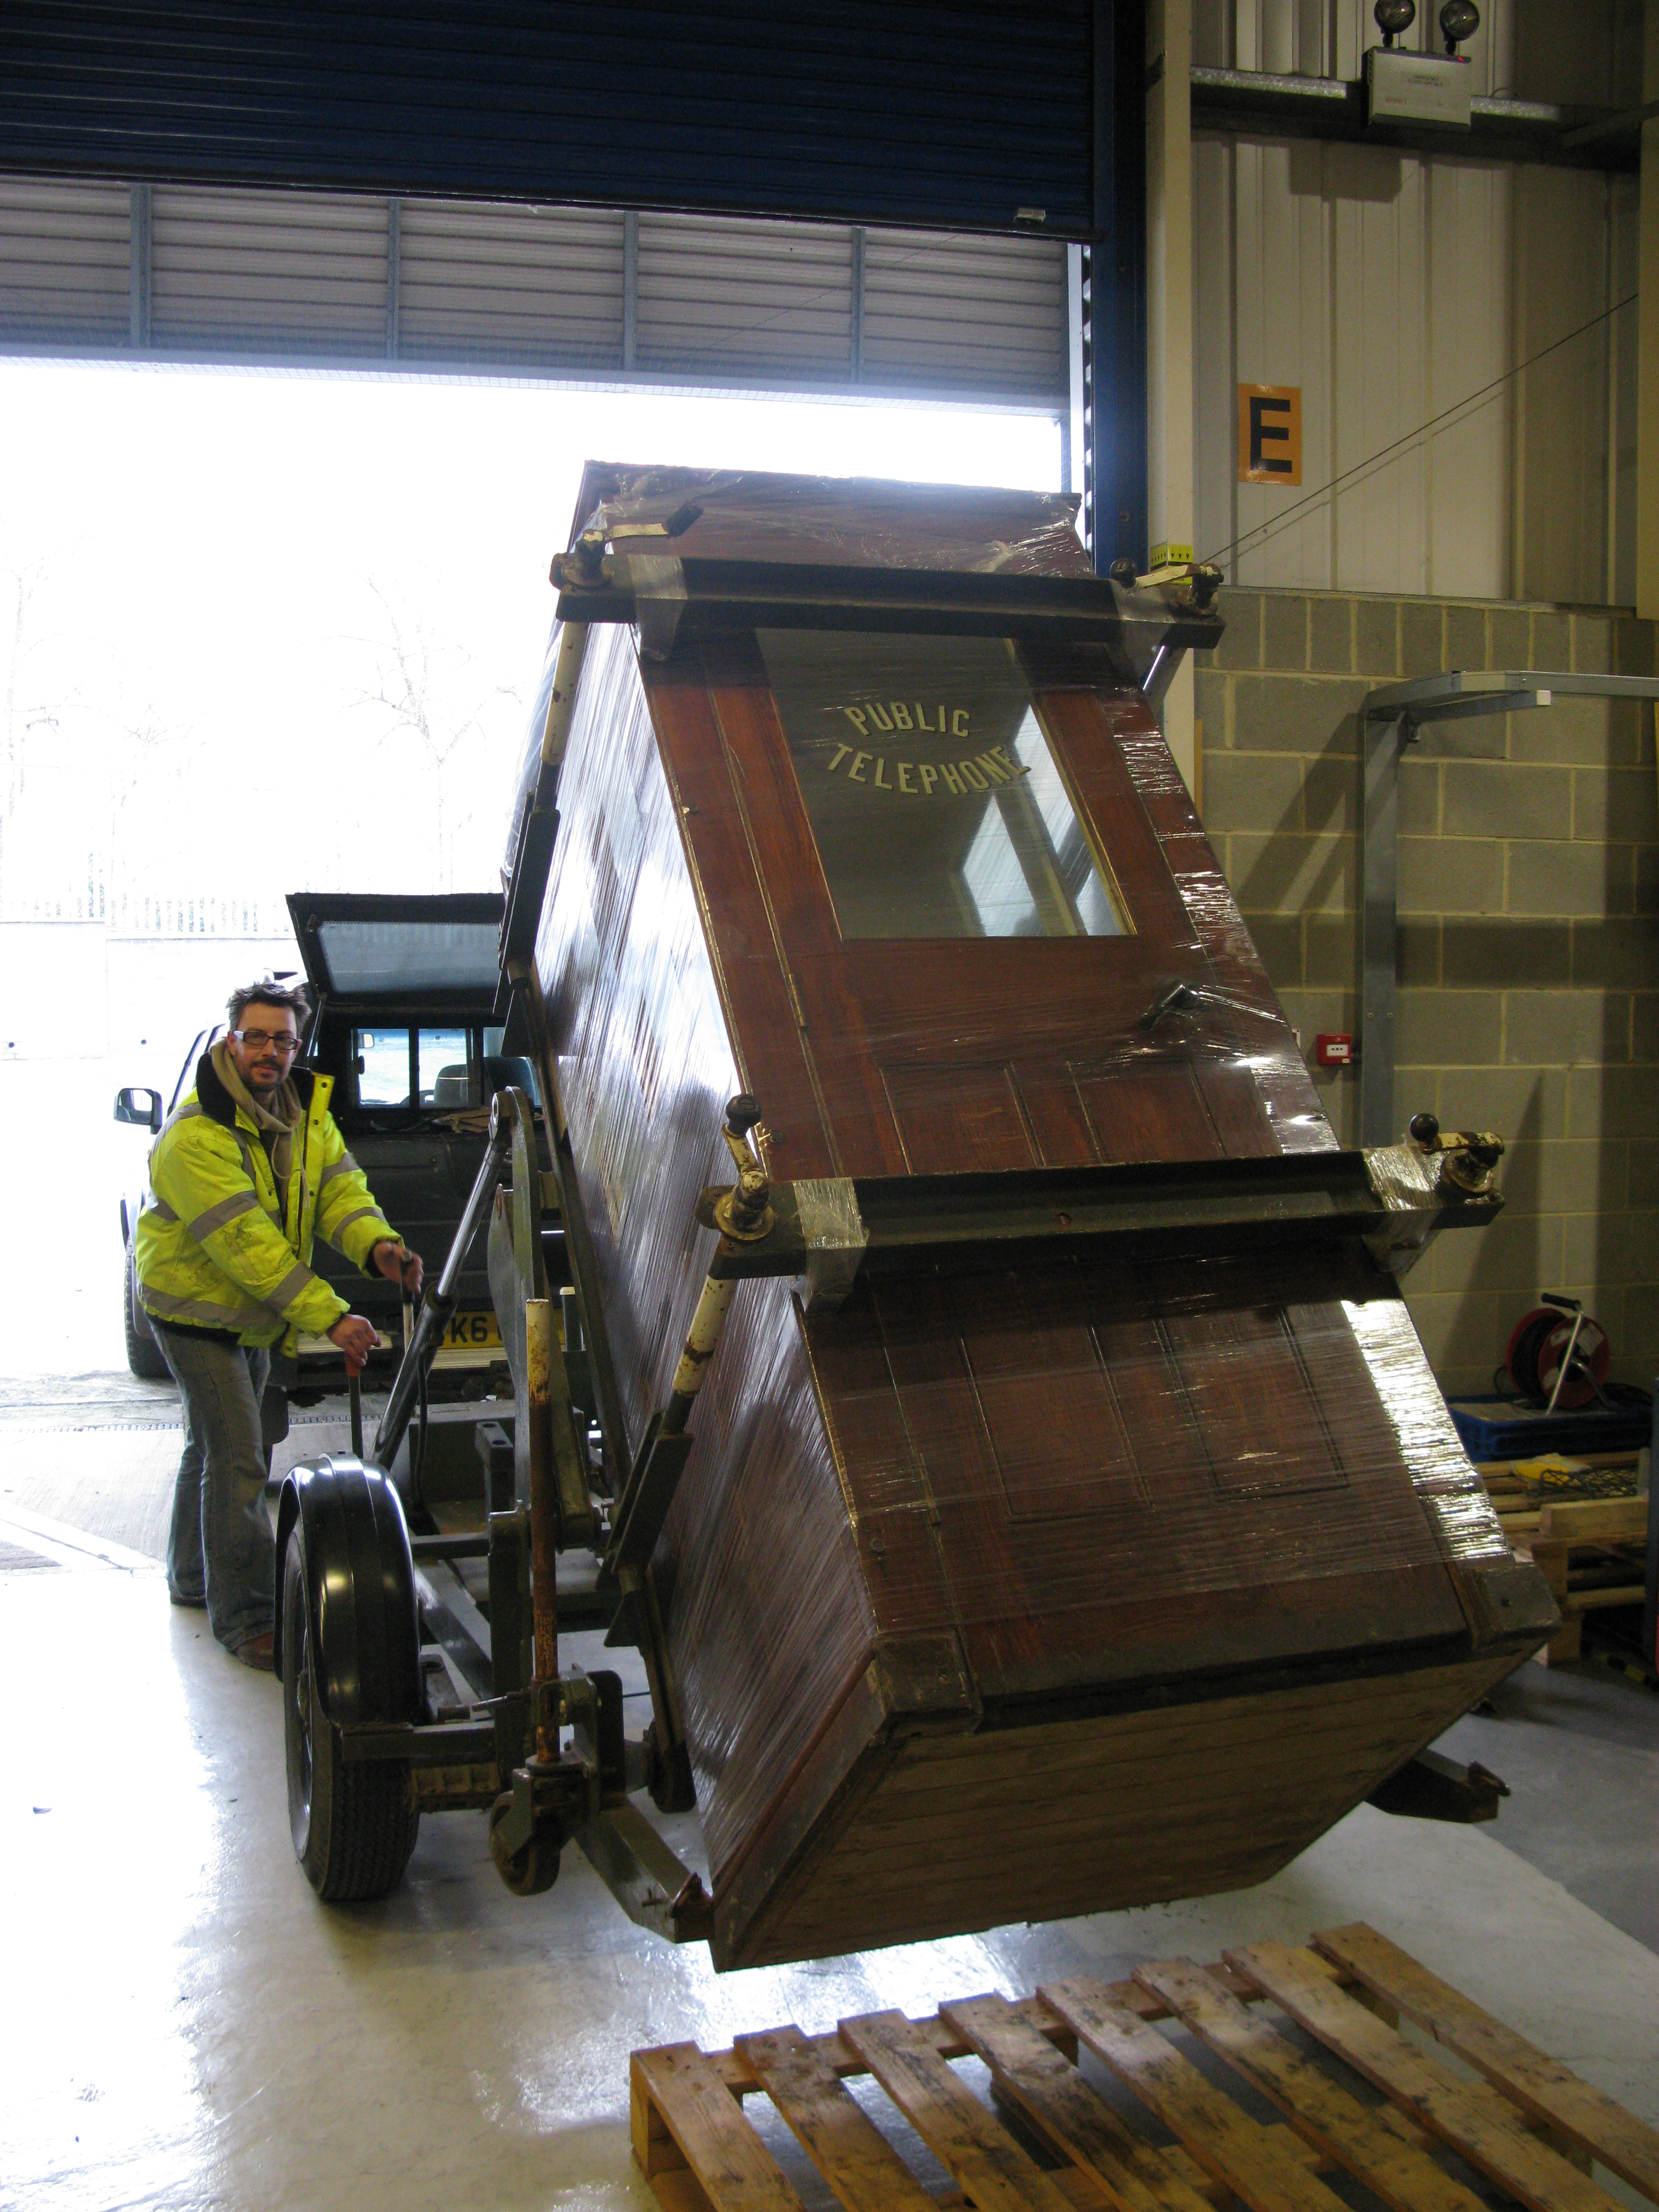 Delivery of a wooden Silence Cabinet to a museum with a purpose built kiosk trailer